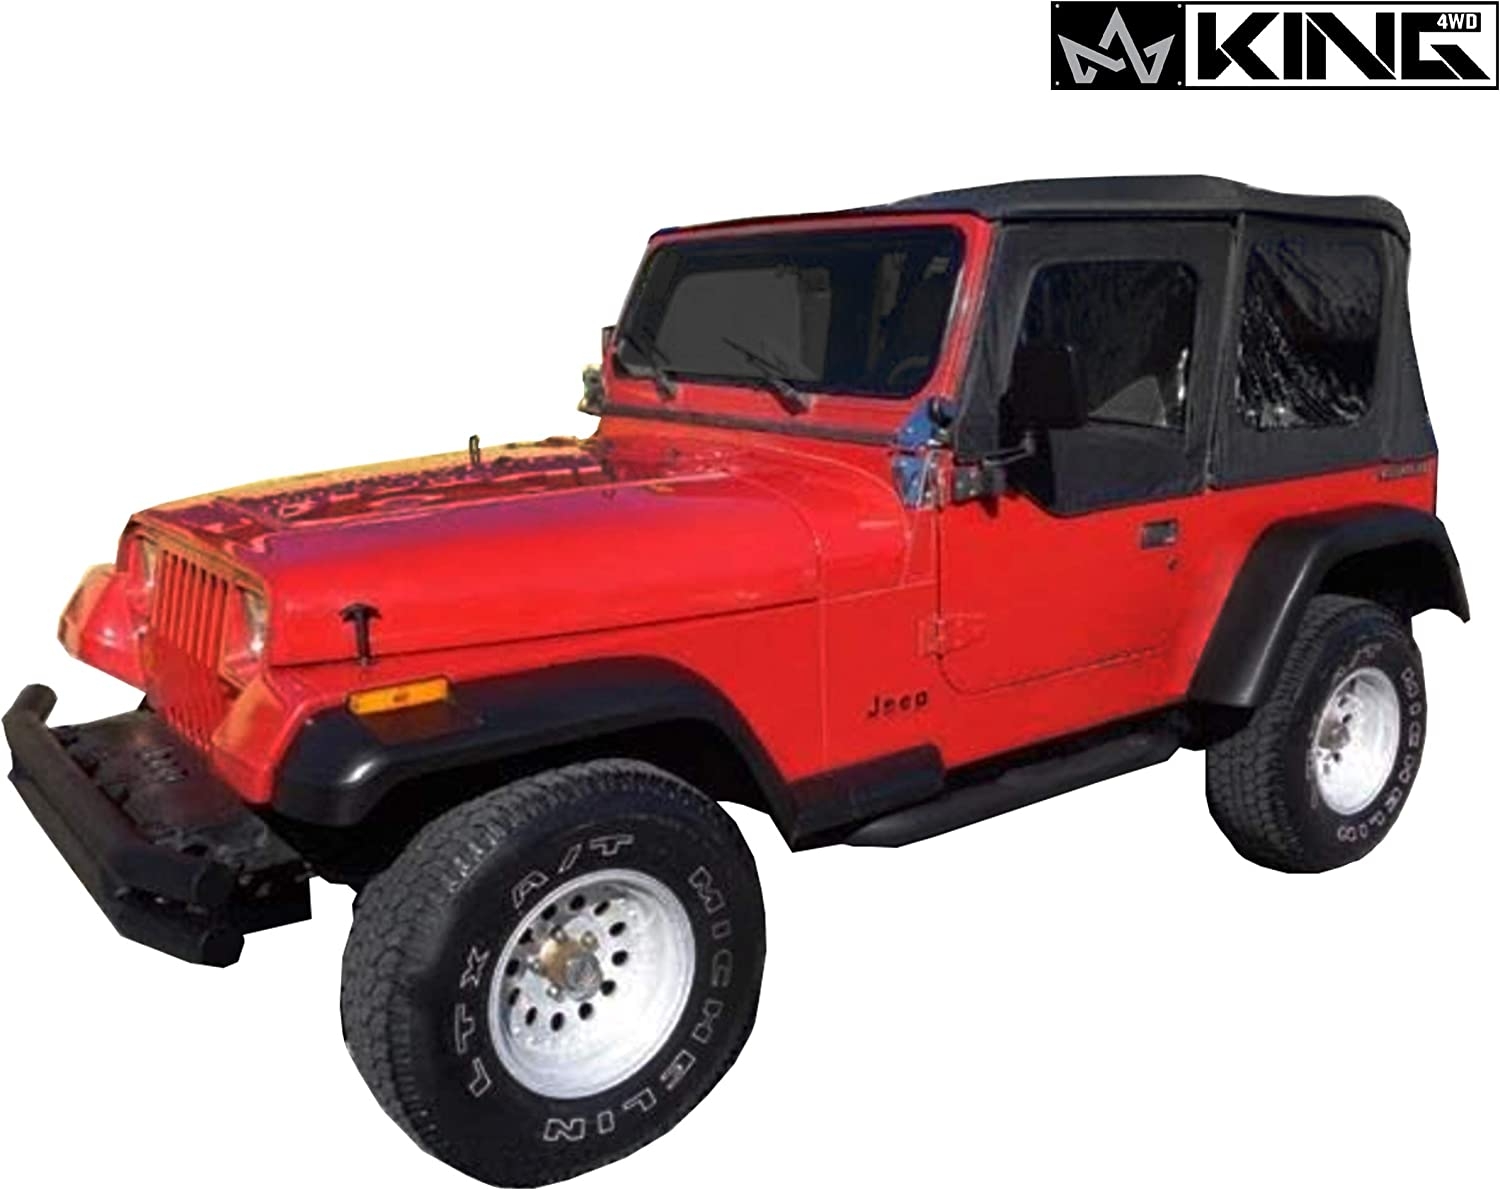 YJ 1987-1995 Jeep Wrangler King 4WD Replacement Soft Top in Black Diamond